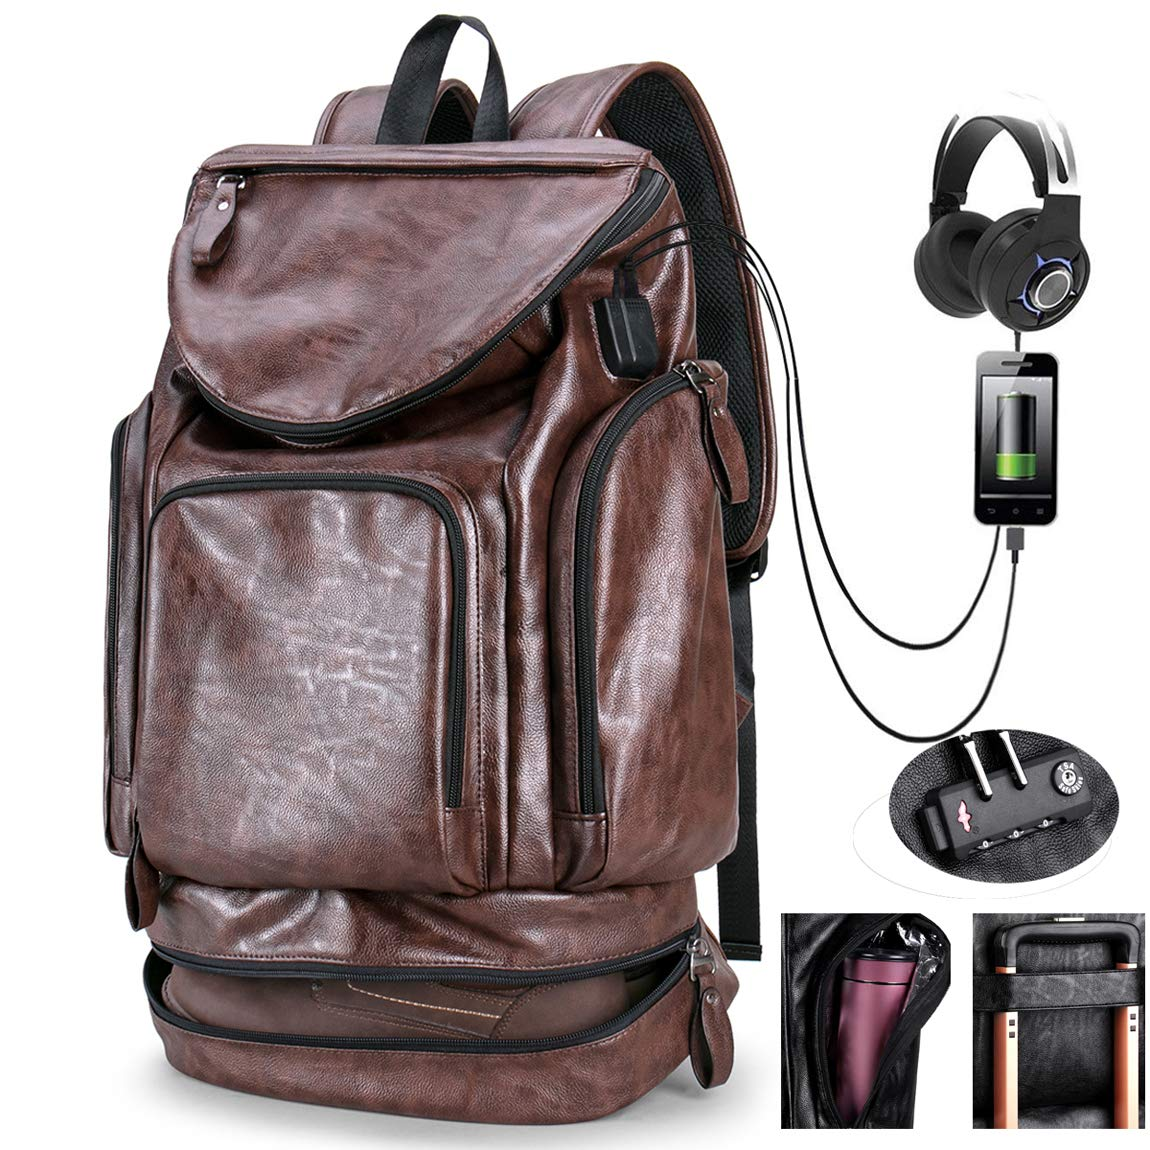 Men's Backpack with USB Leather Waterproof Large Capacity Backpack School College Bookbag Laptop Computer Backpack with Shoe Compartm Leather Travel Bag Extra Capacity Casual Vintage Daypacks (brown)